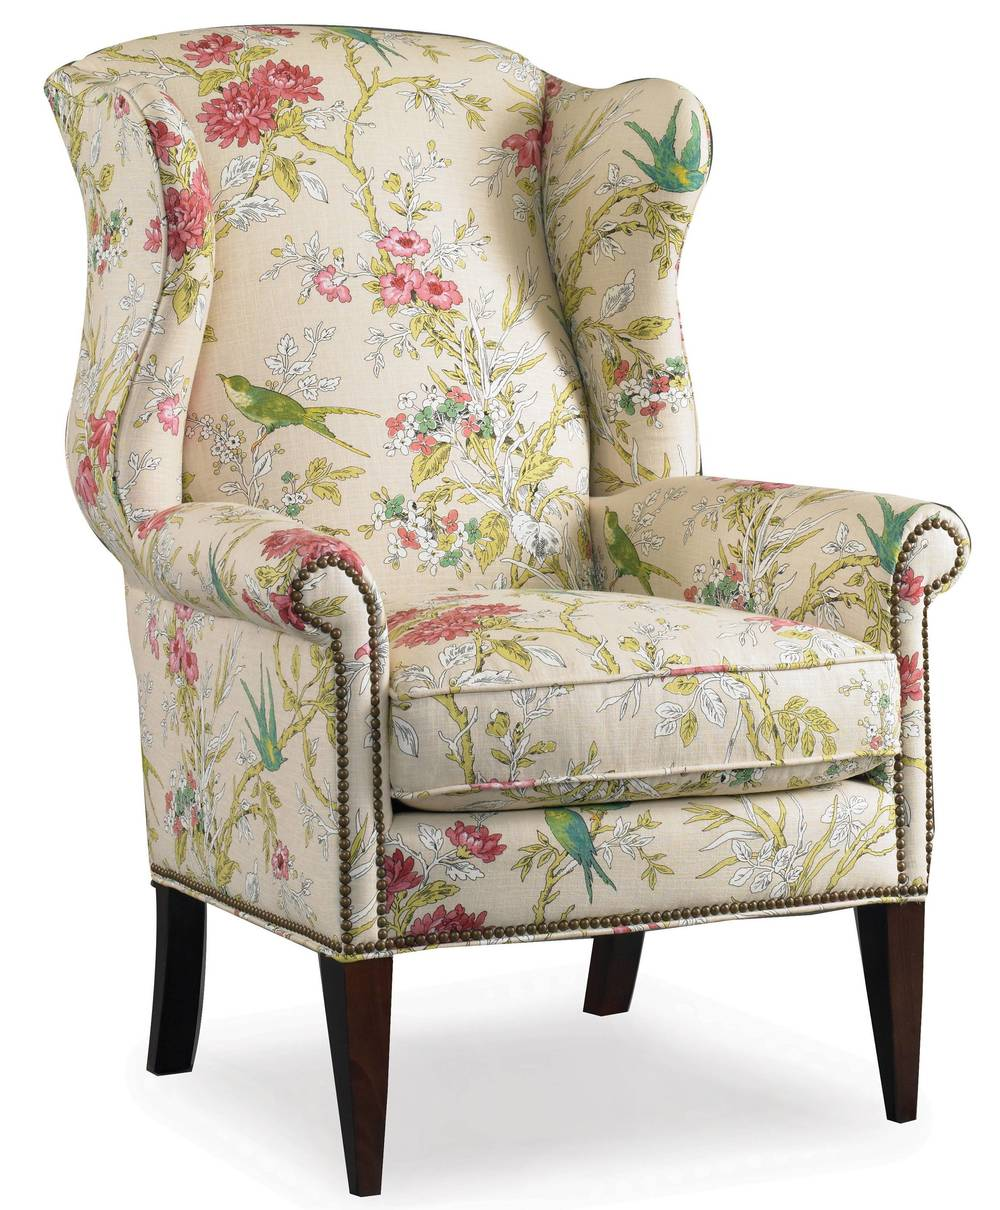 SAM MOORE DIVISION, INC - Remington Wing Chair